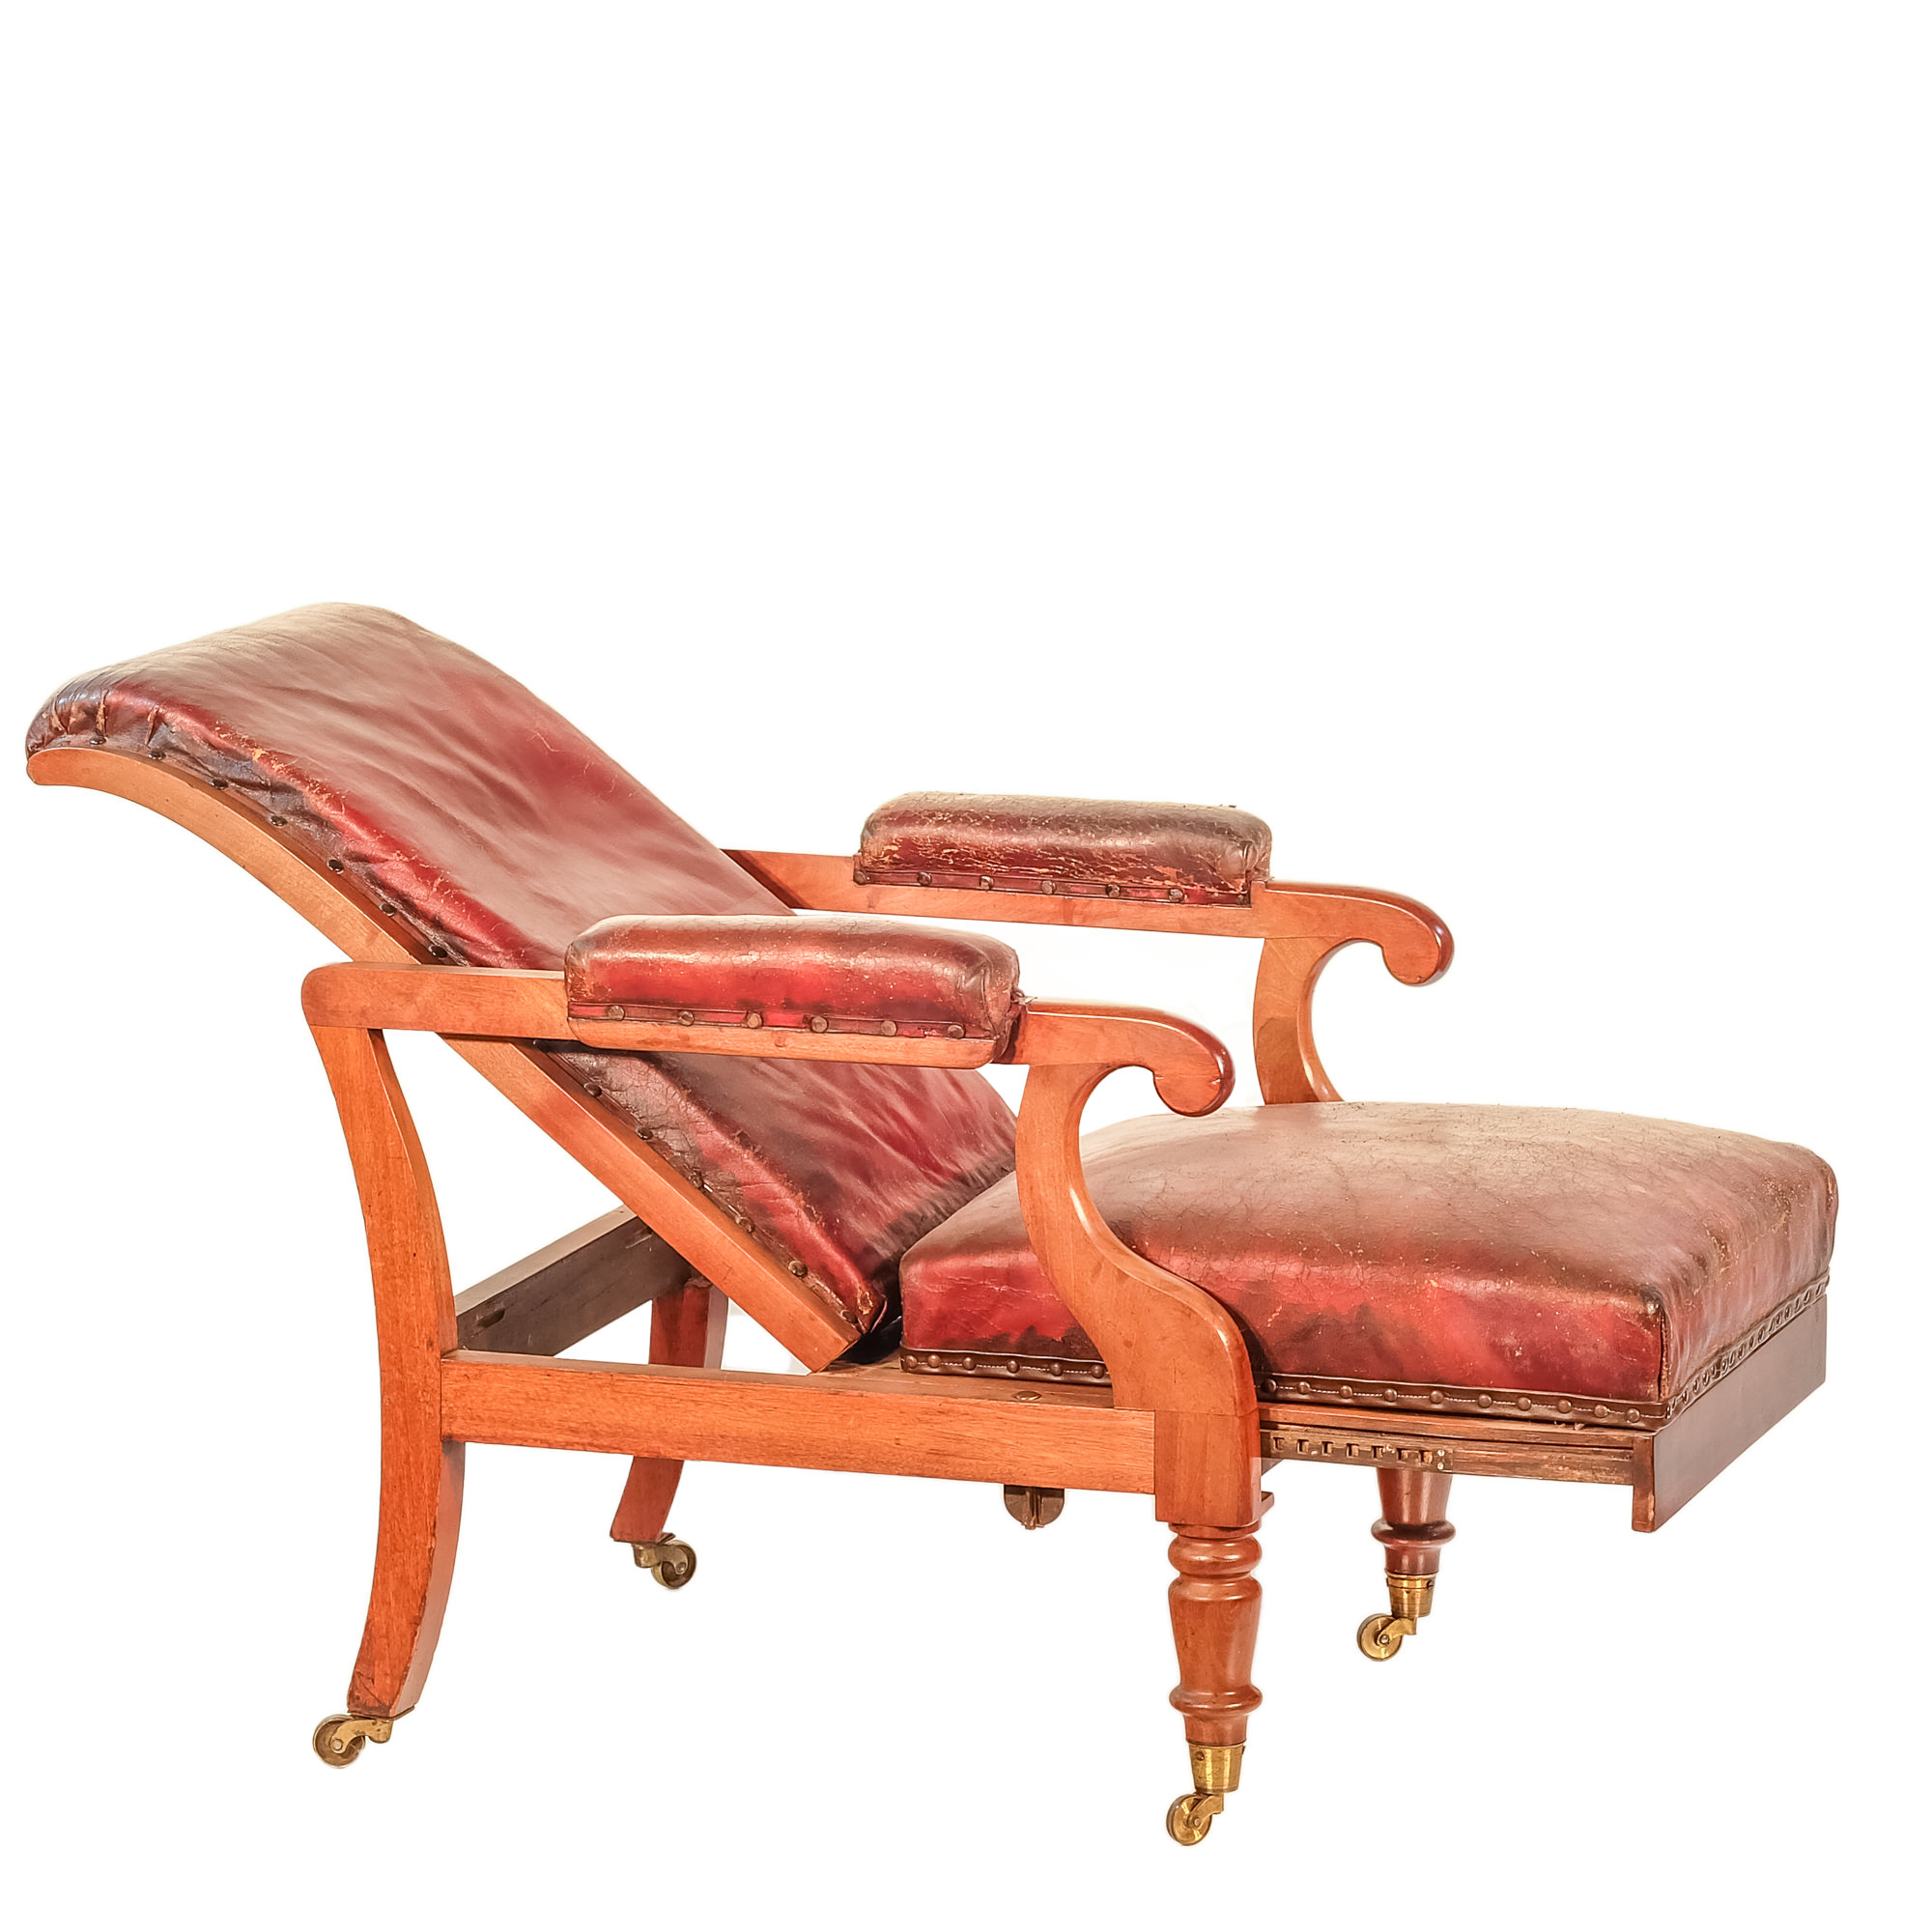 'Early Victorian Mahogany Reclining Armchair with Maroon Leather Upholstery Circa 1850'